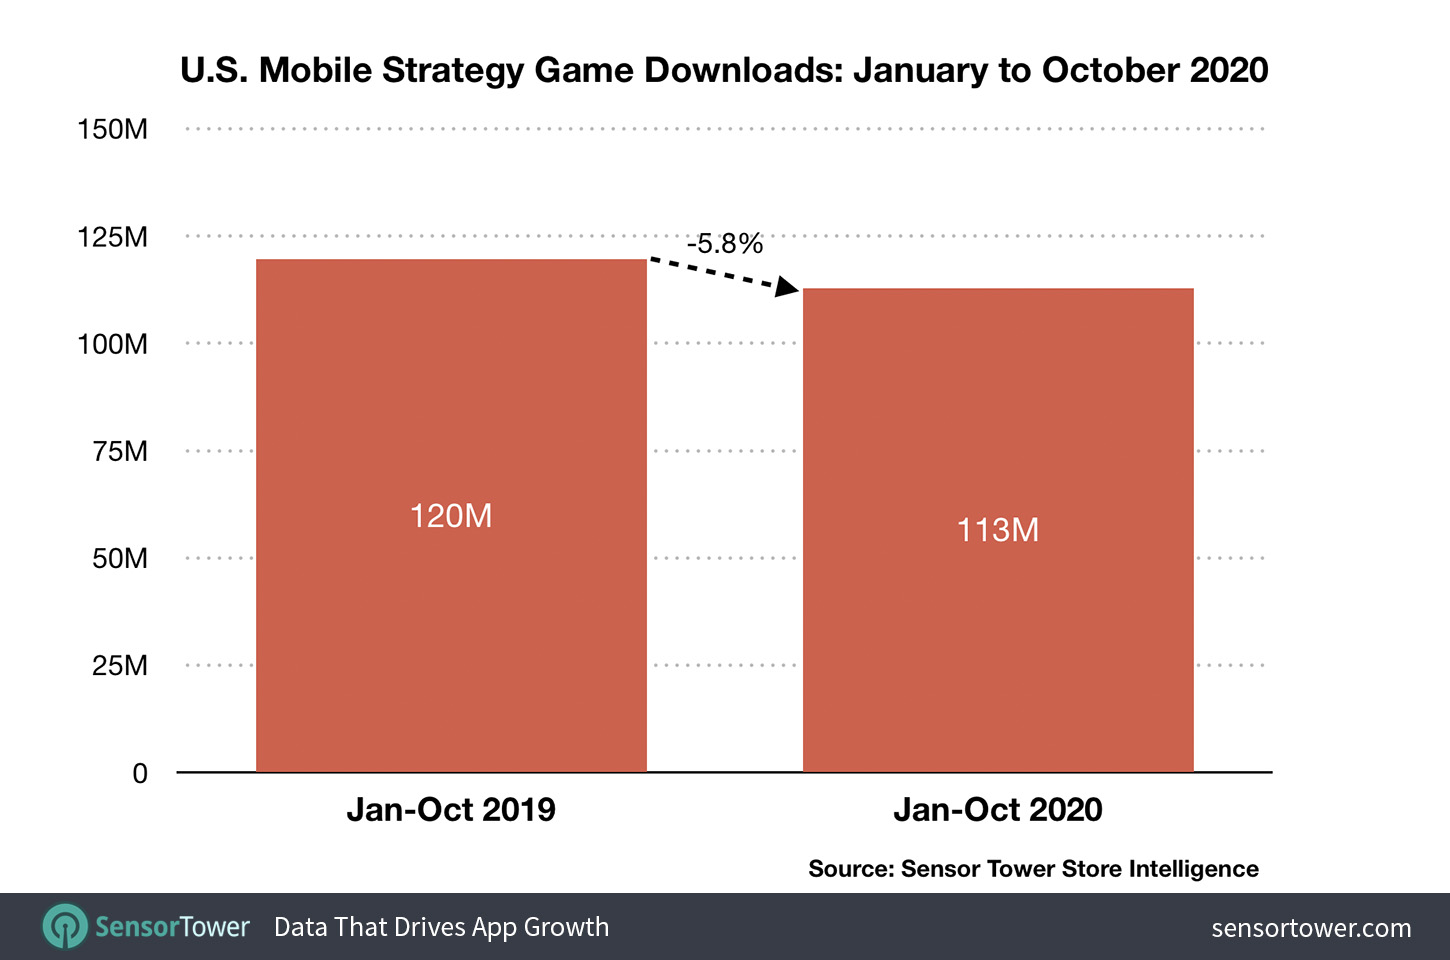 U.S. Mobile Strategy Game Downloads: January to October 2020